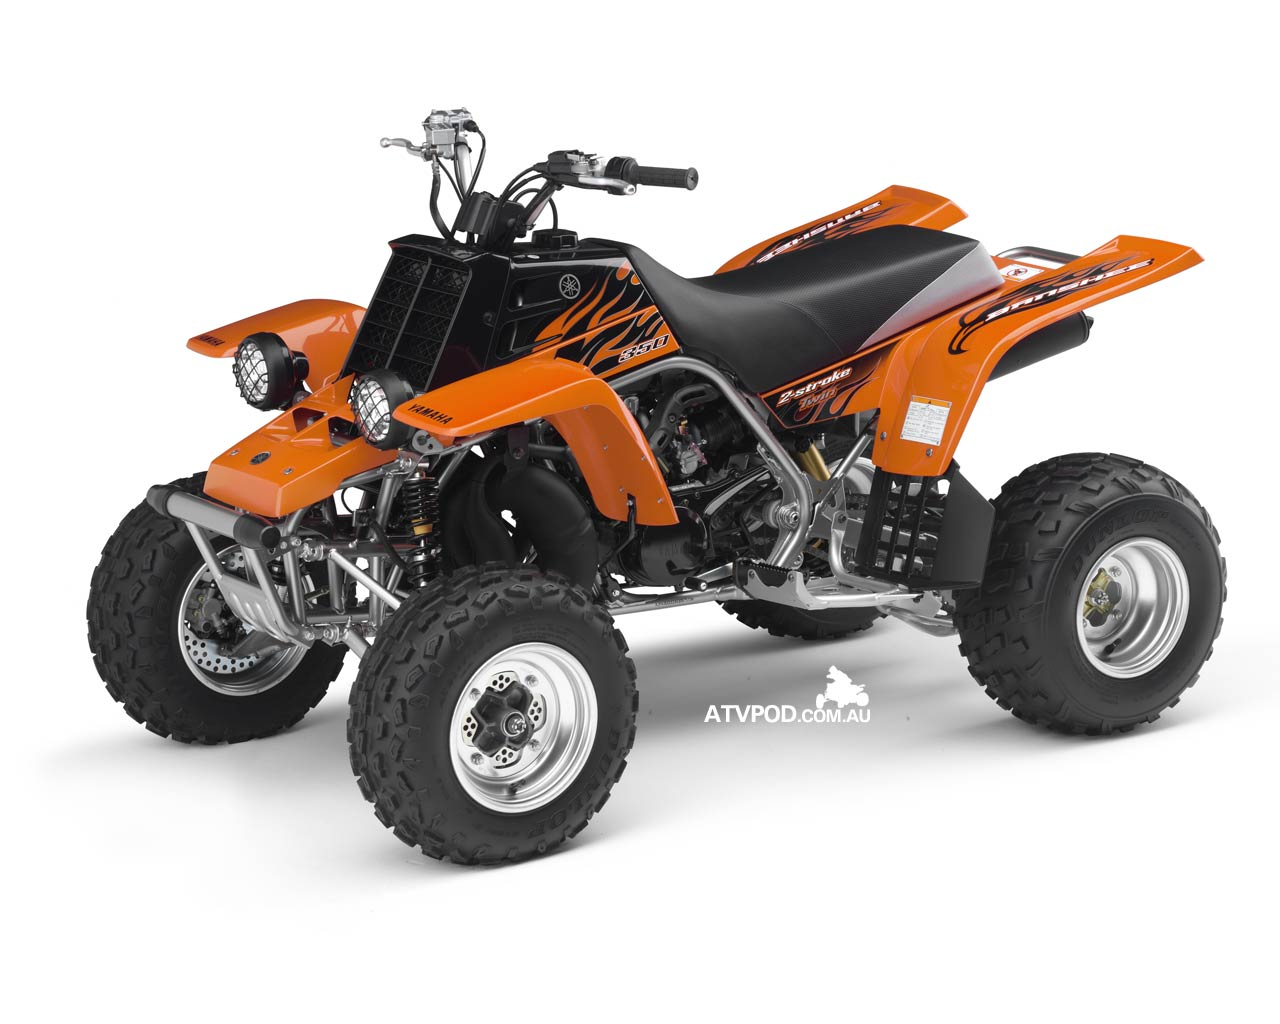 yamaha yfz350 banshee photos and comments. Black Bedroom Furniture Sets. Home Design Ideas